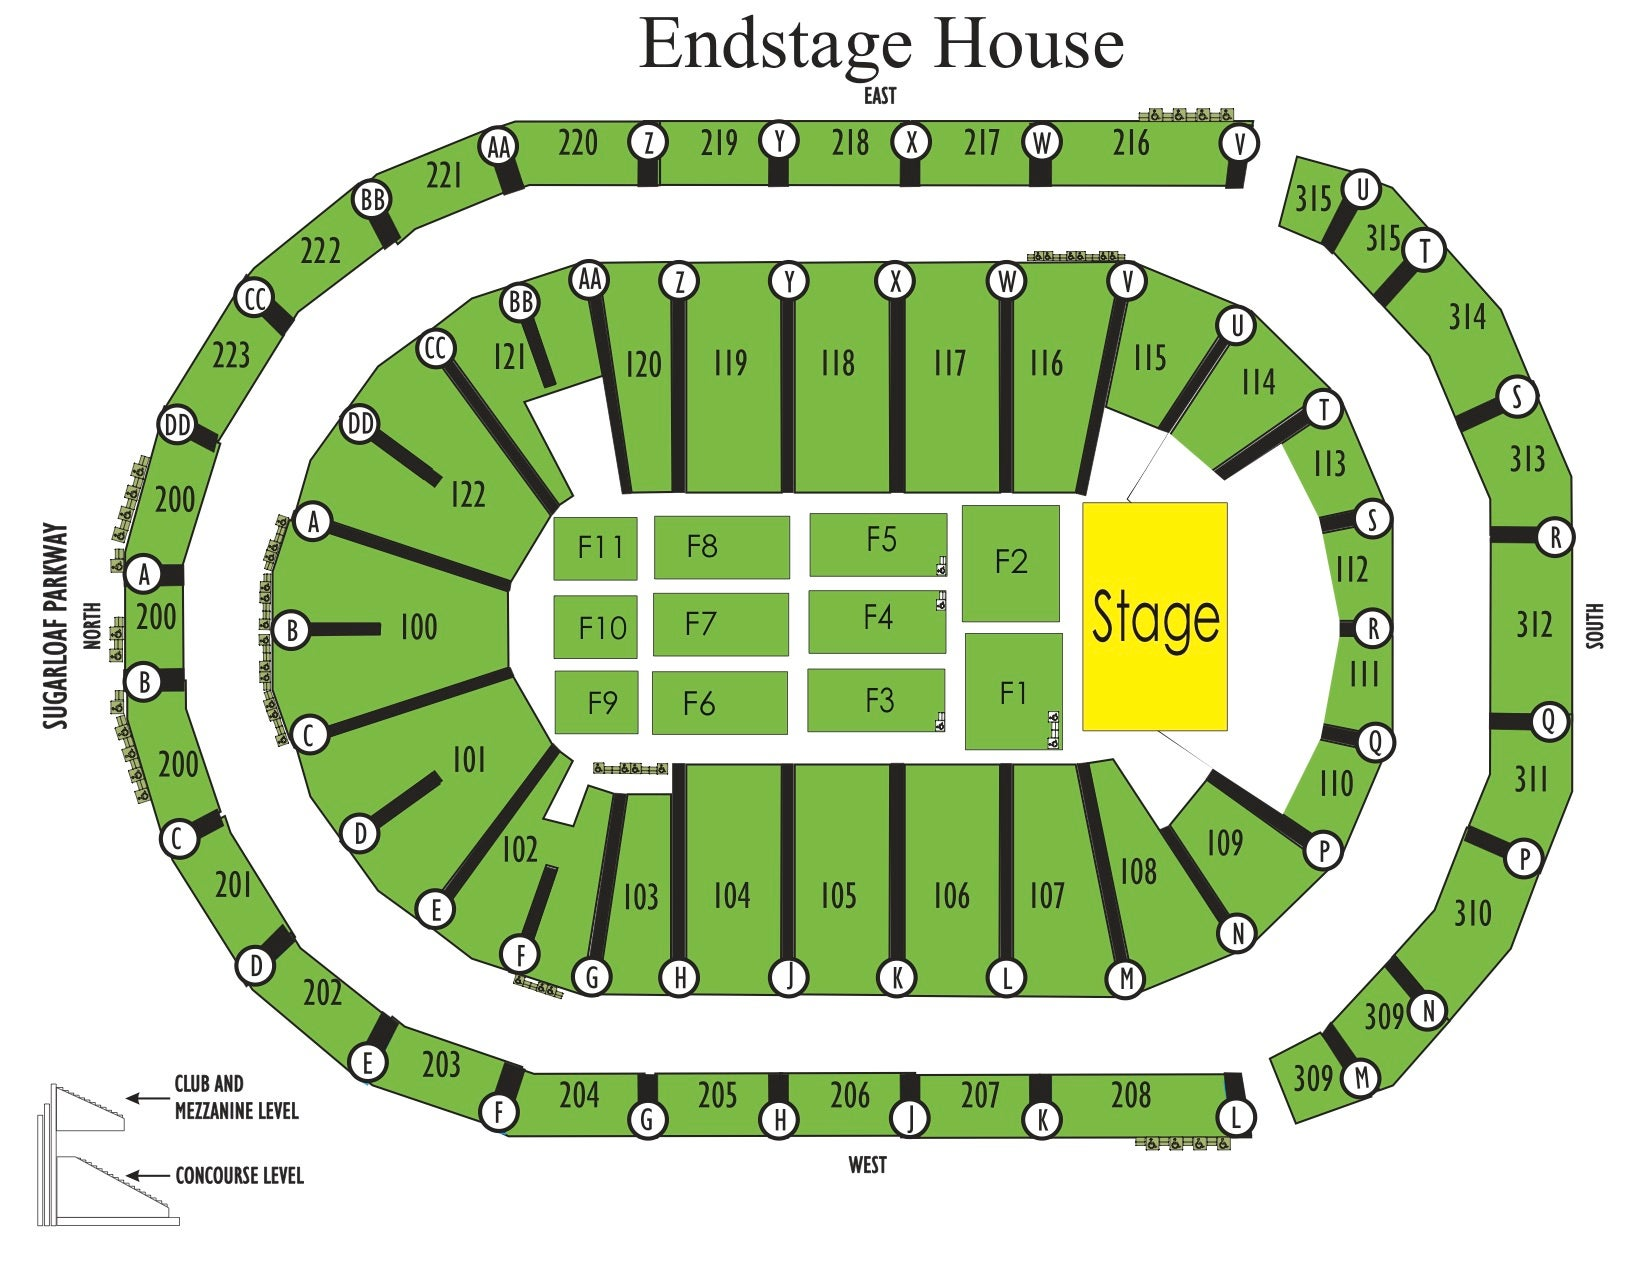 Endstage House